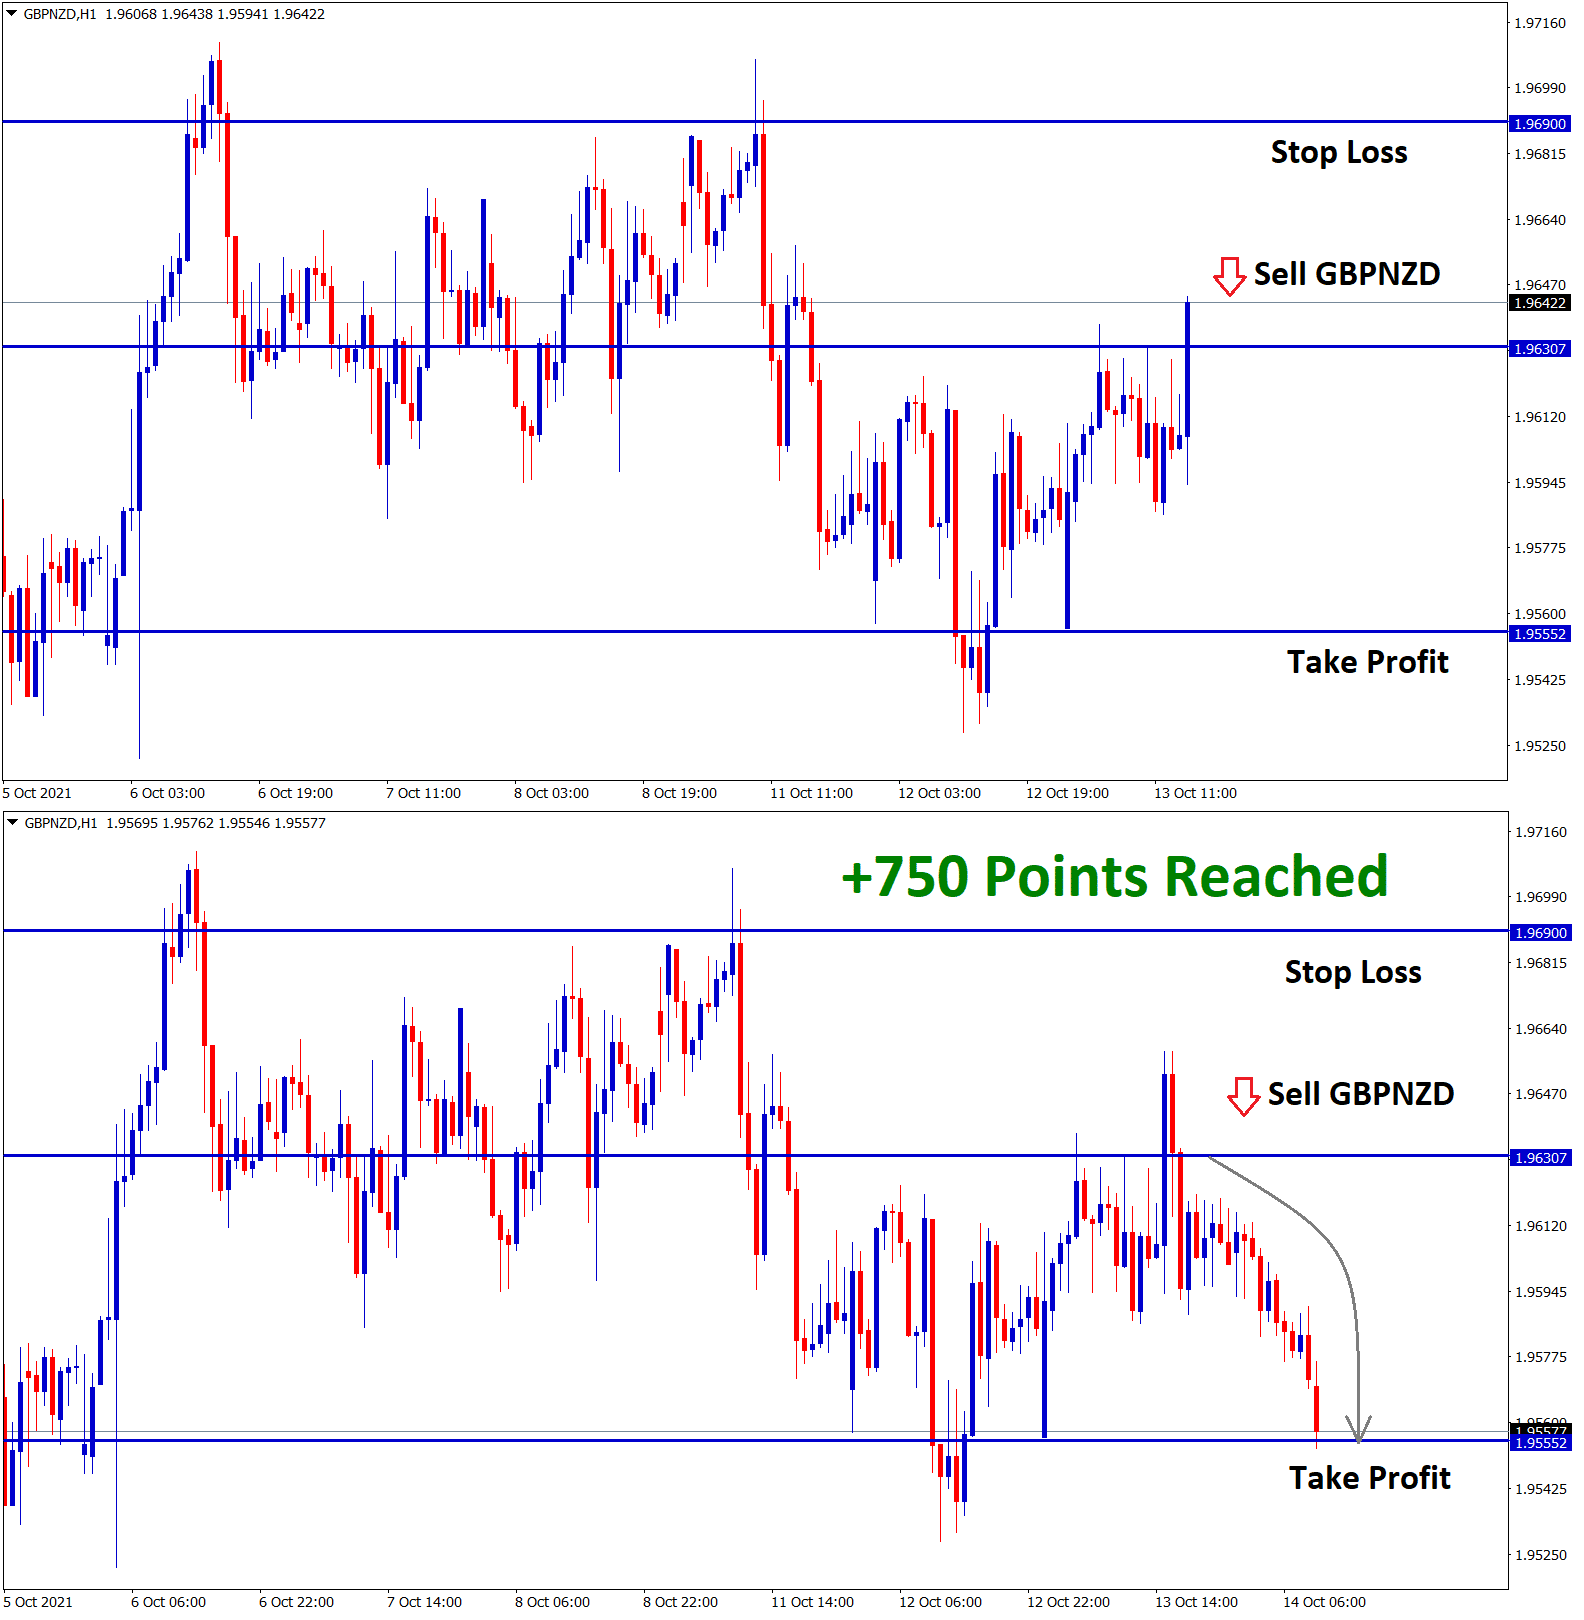 gbpnzd has reached the target 1 with 750 points profit